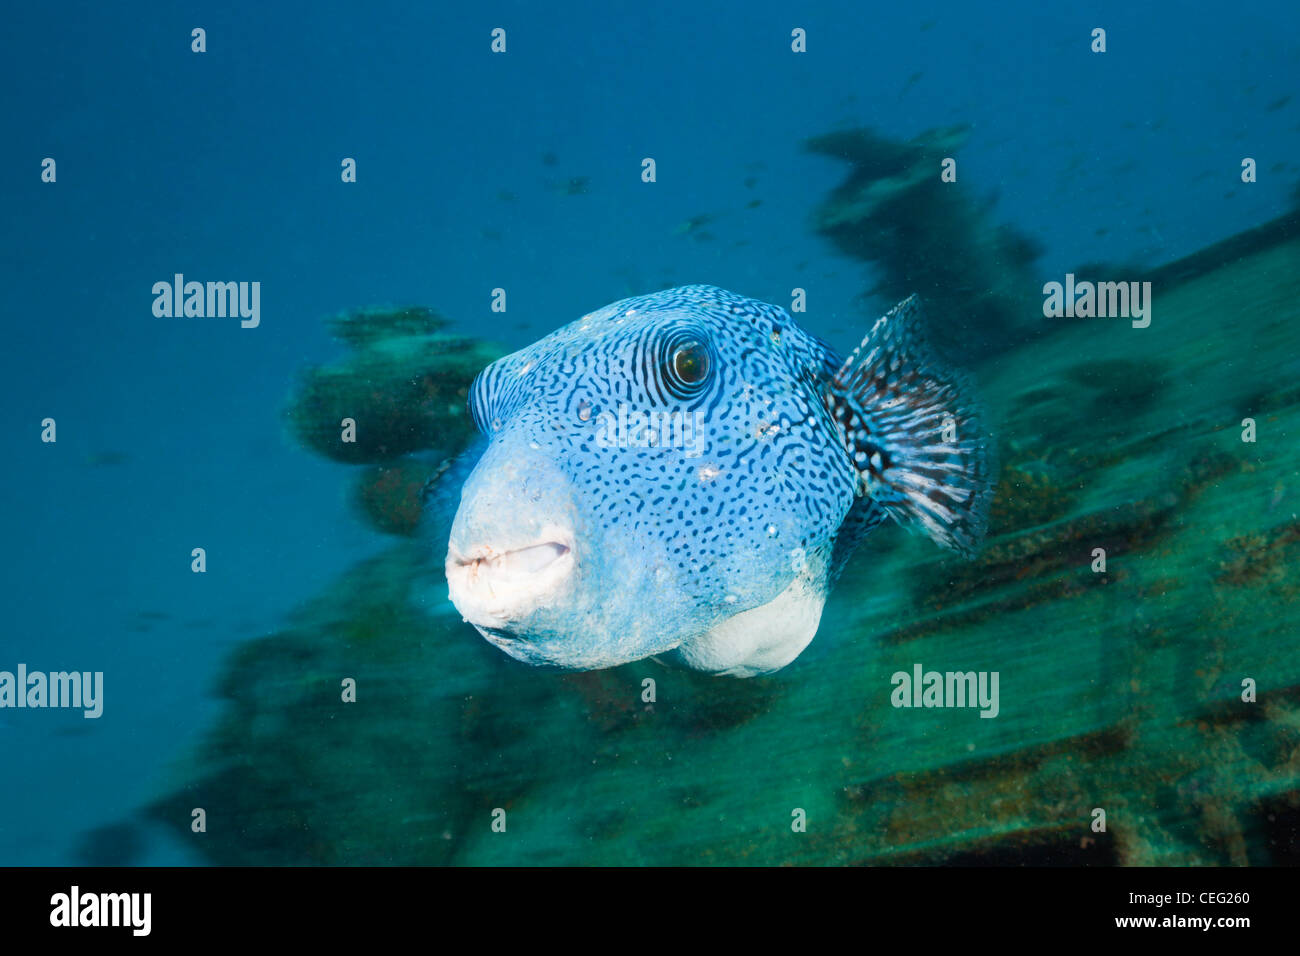 Starry Puffer over Maldive Victory Wreck, Arothrom caeruleopunctatus, North Male Atoll, Indian Ocean, Maldives - Stock Image